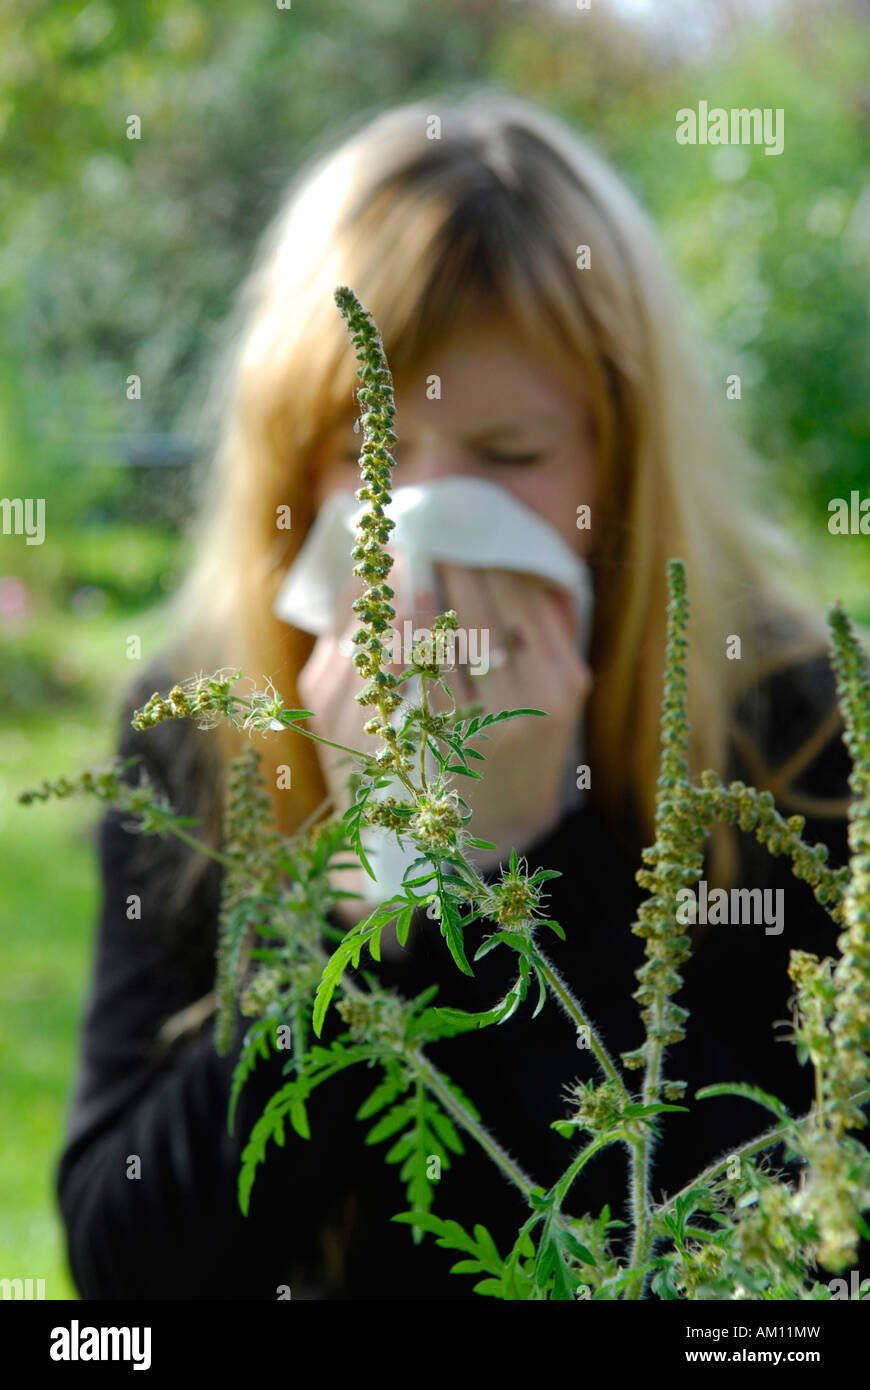 Woman reacting allergic to Ragweed Stock Photo